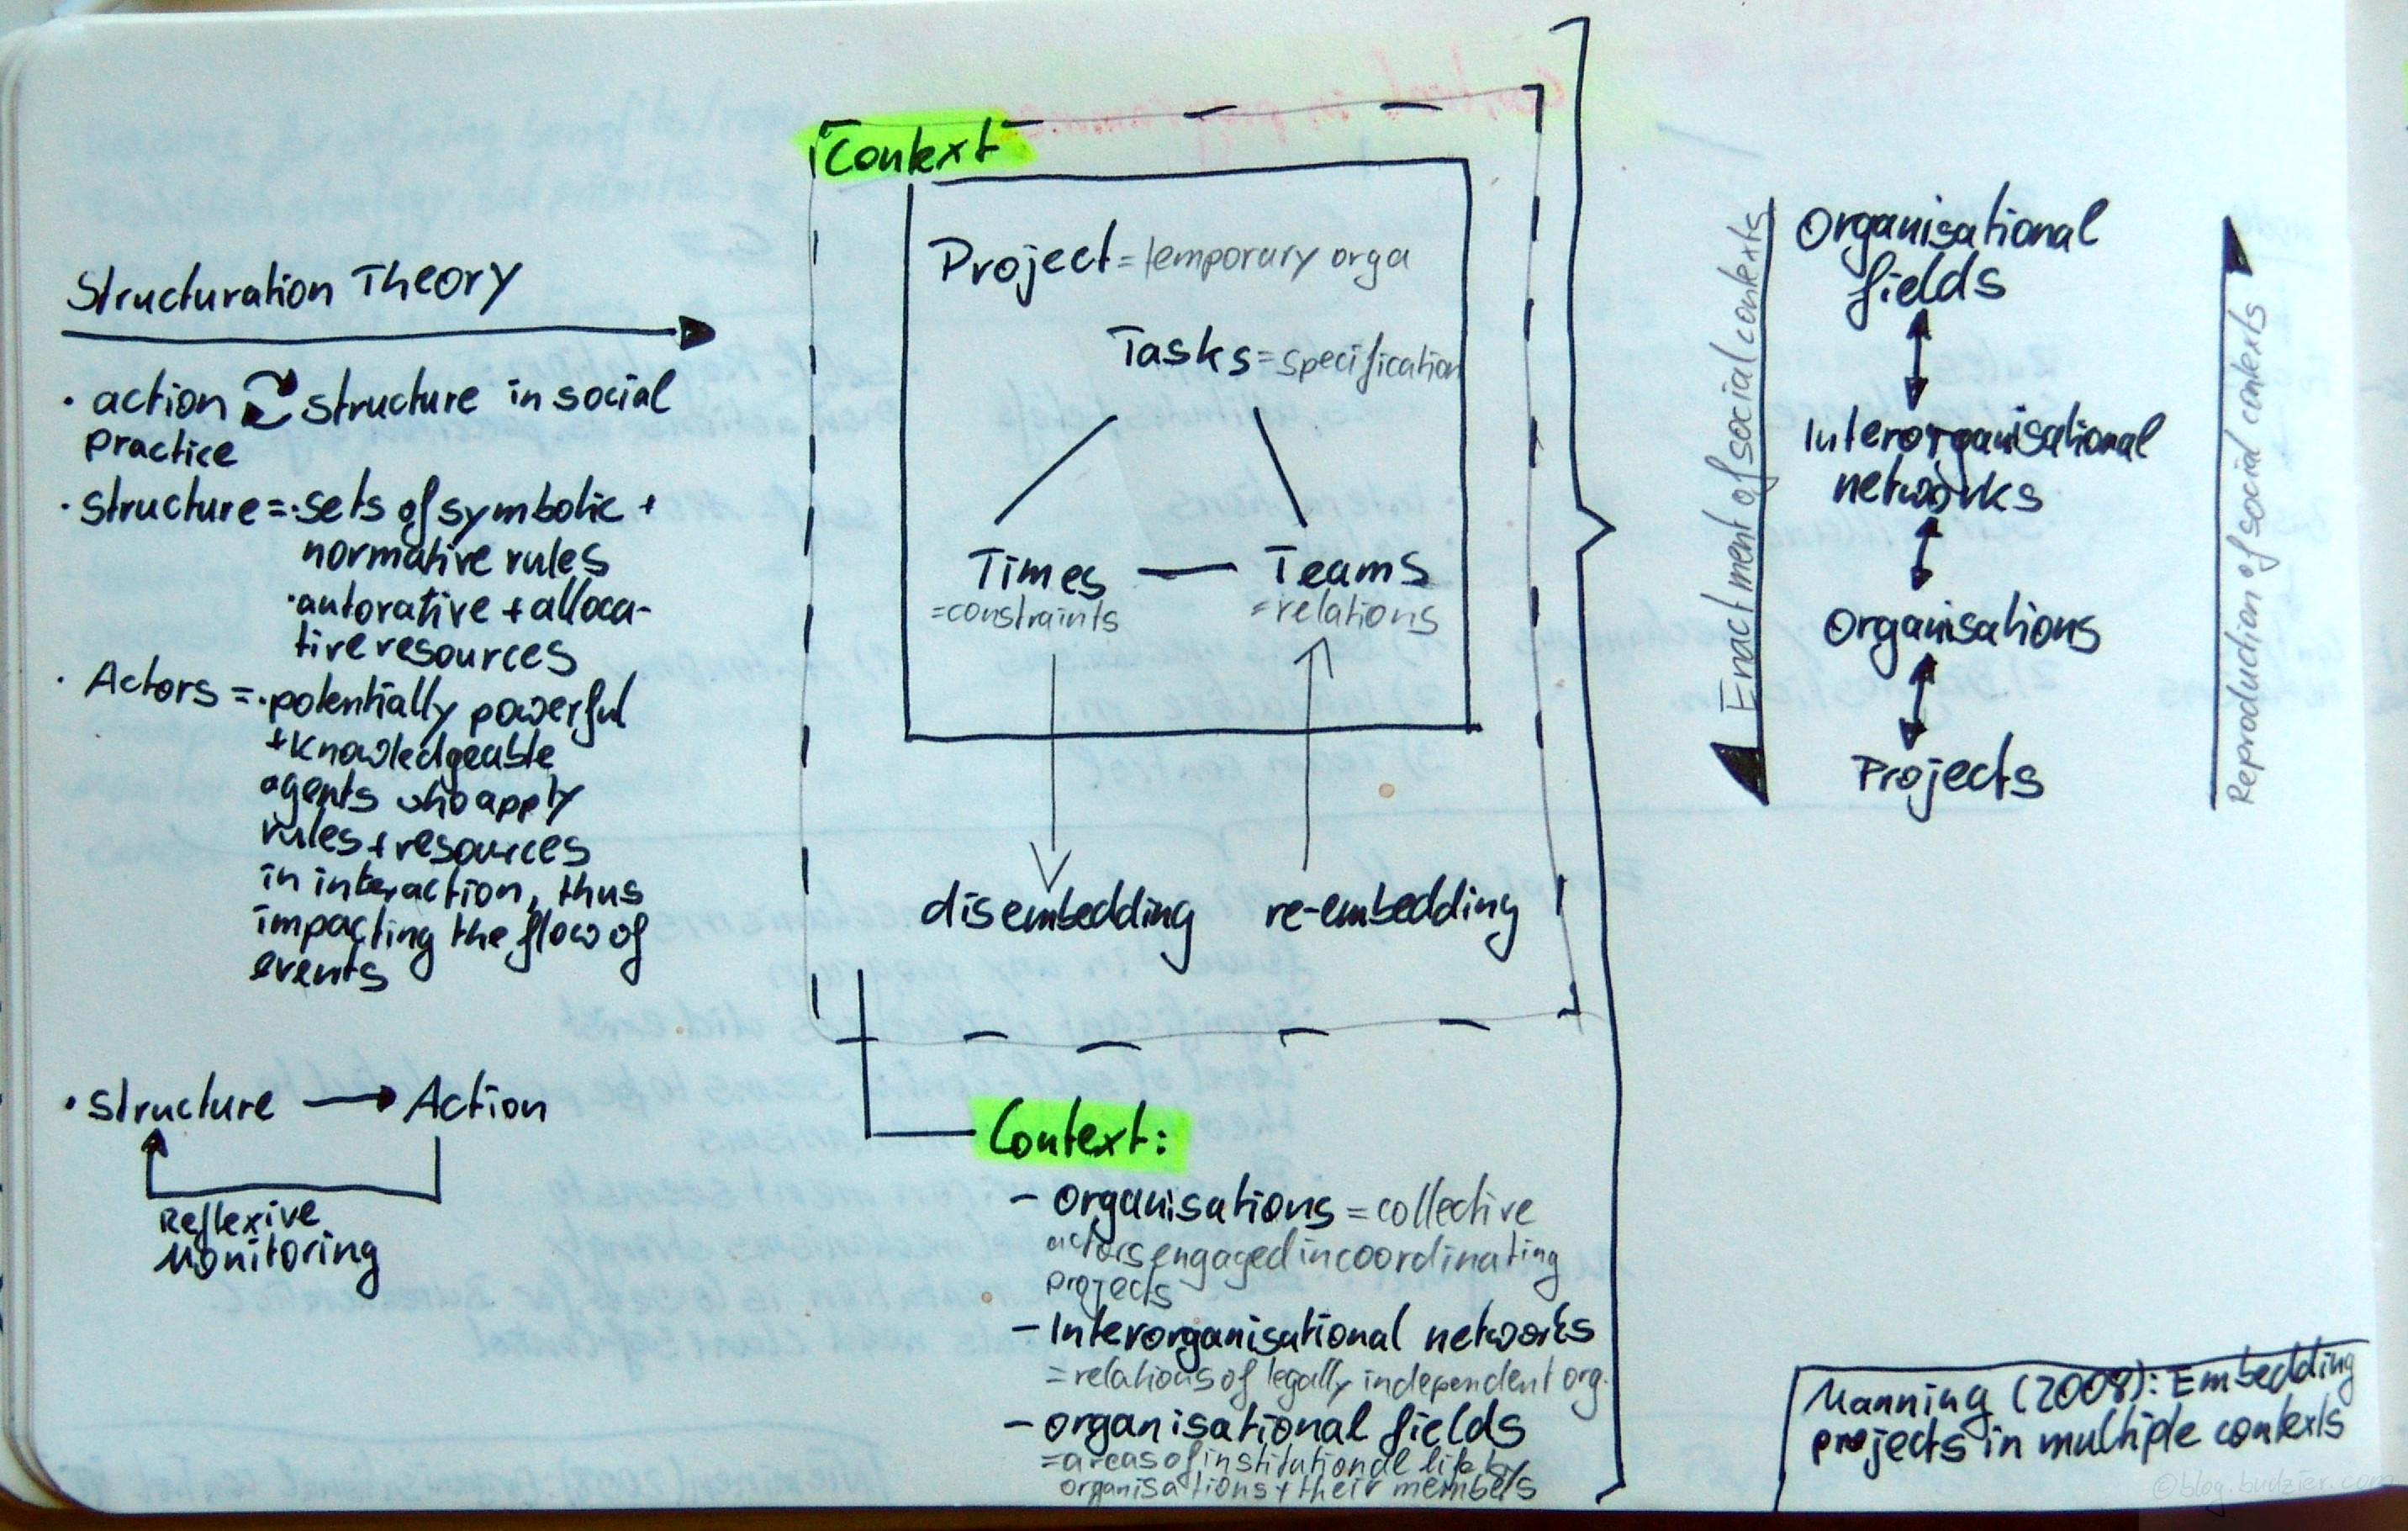 Embedding projects in multiple contexts – a structuration perspective (Manning, 2008)